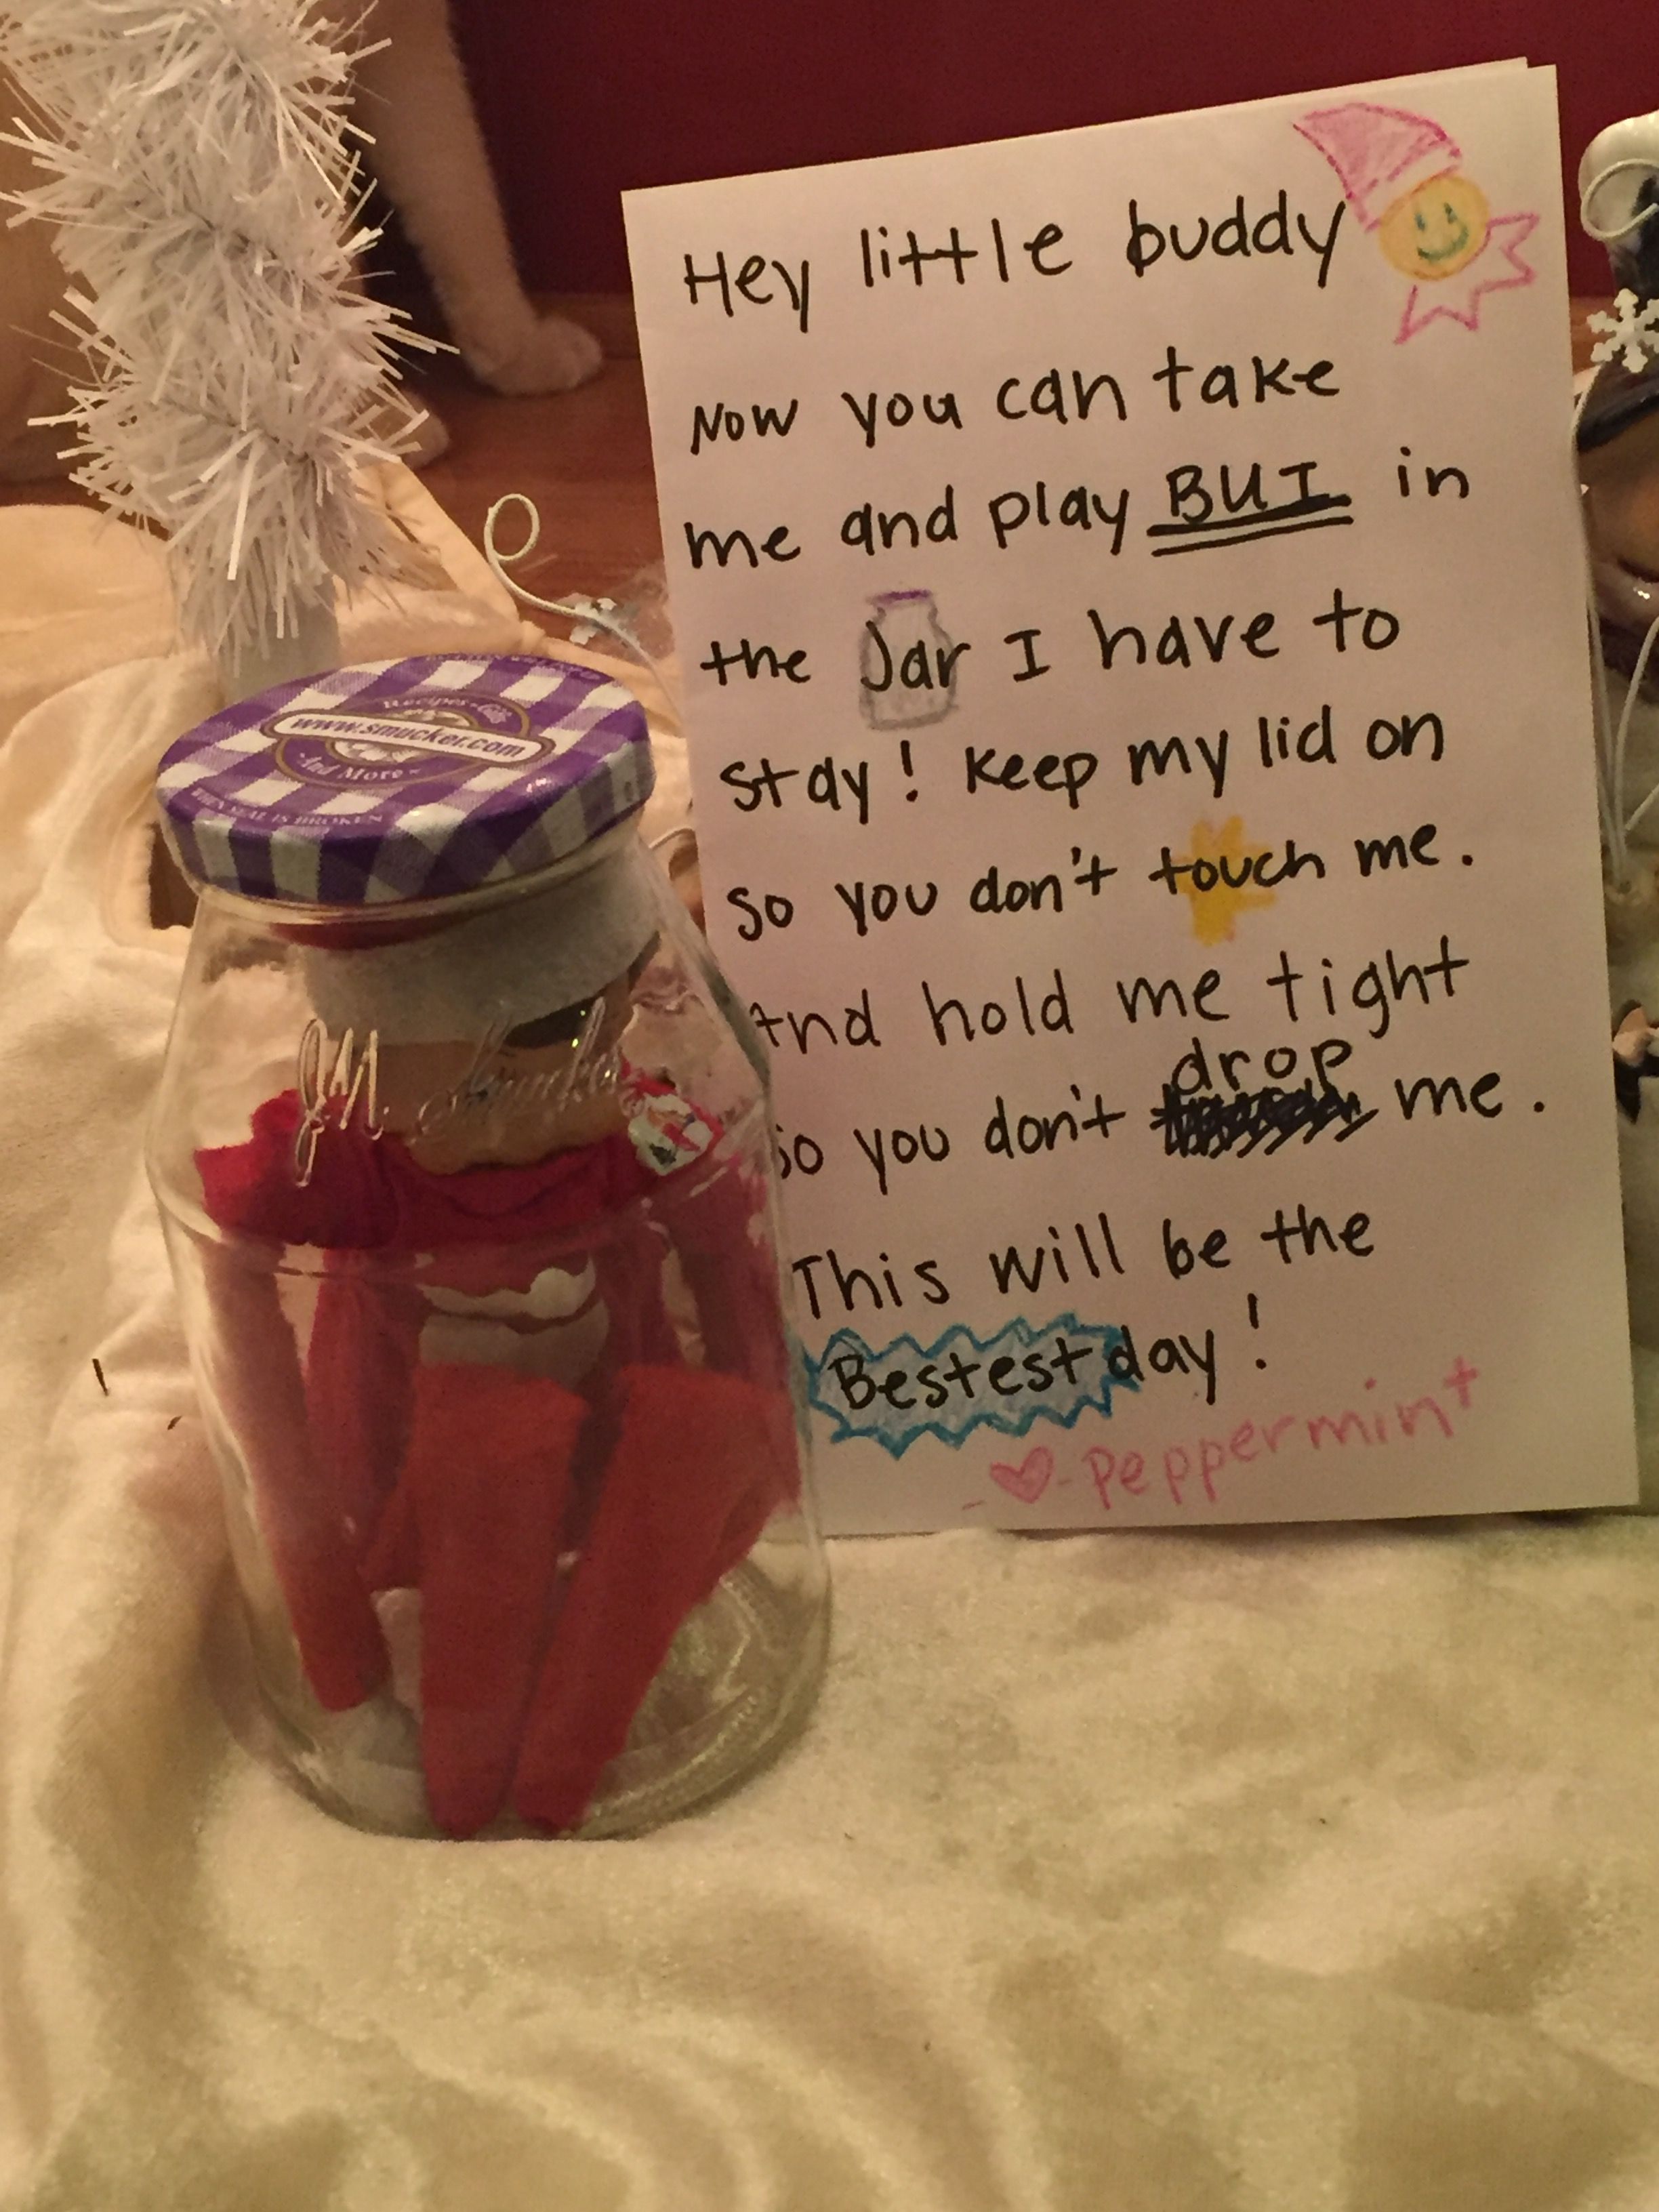 Elf On The Shelf Adventures In A Jar Awesome Elf On The Shelf Ideas Elf Fun Elf On The Shelf